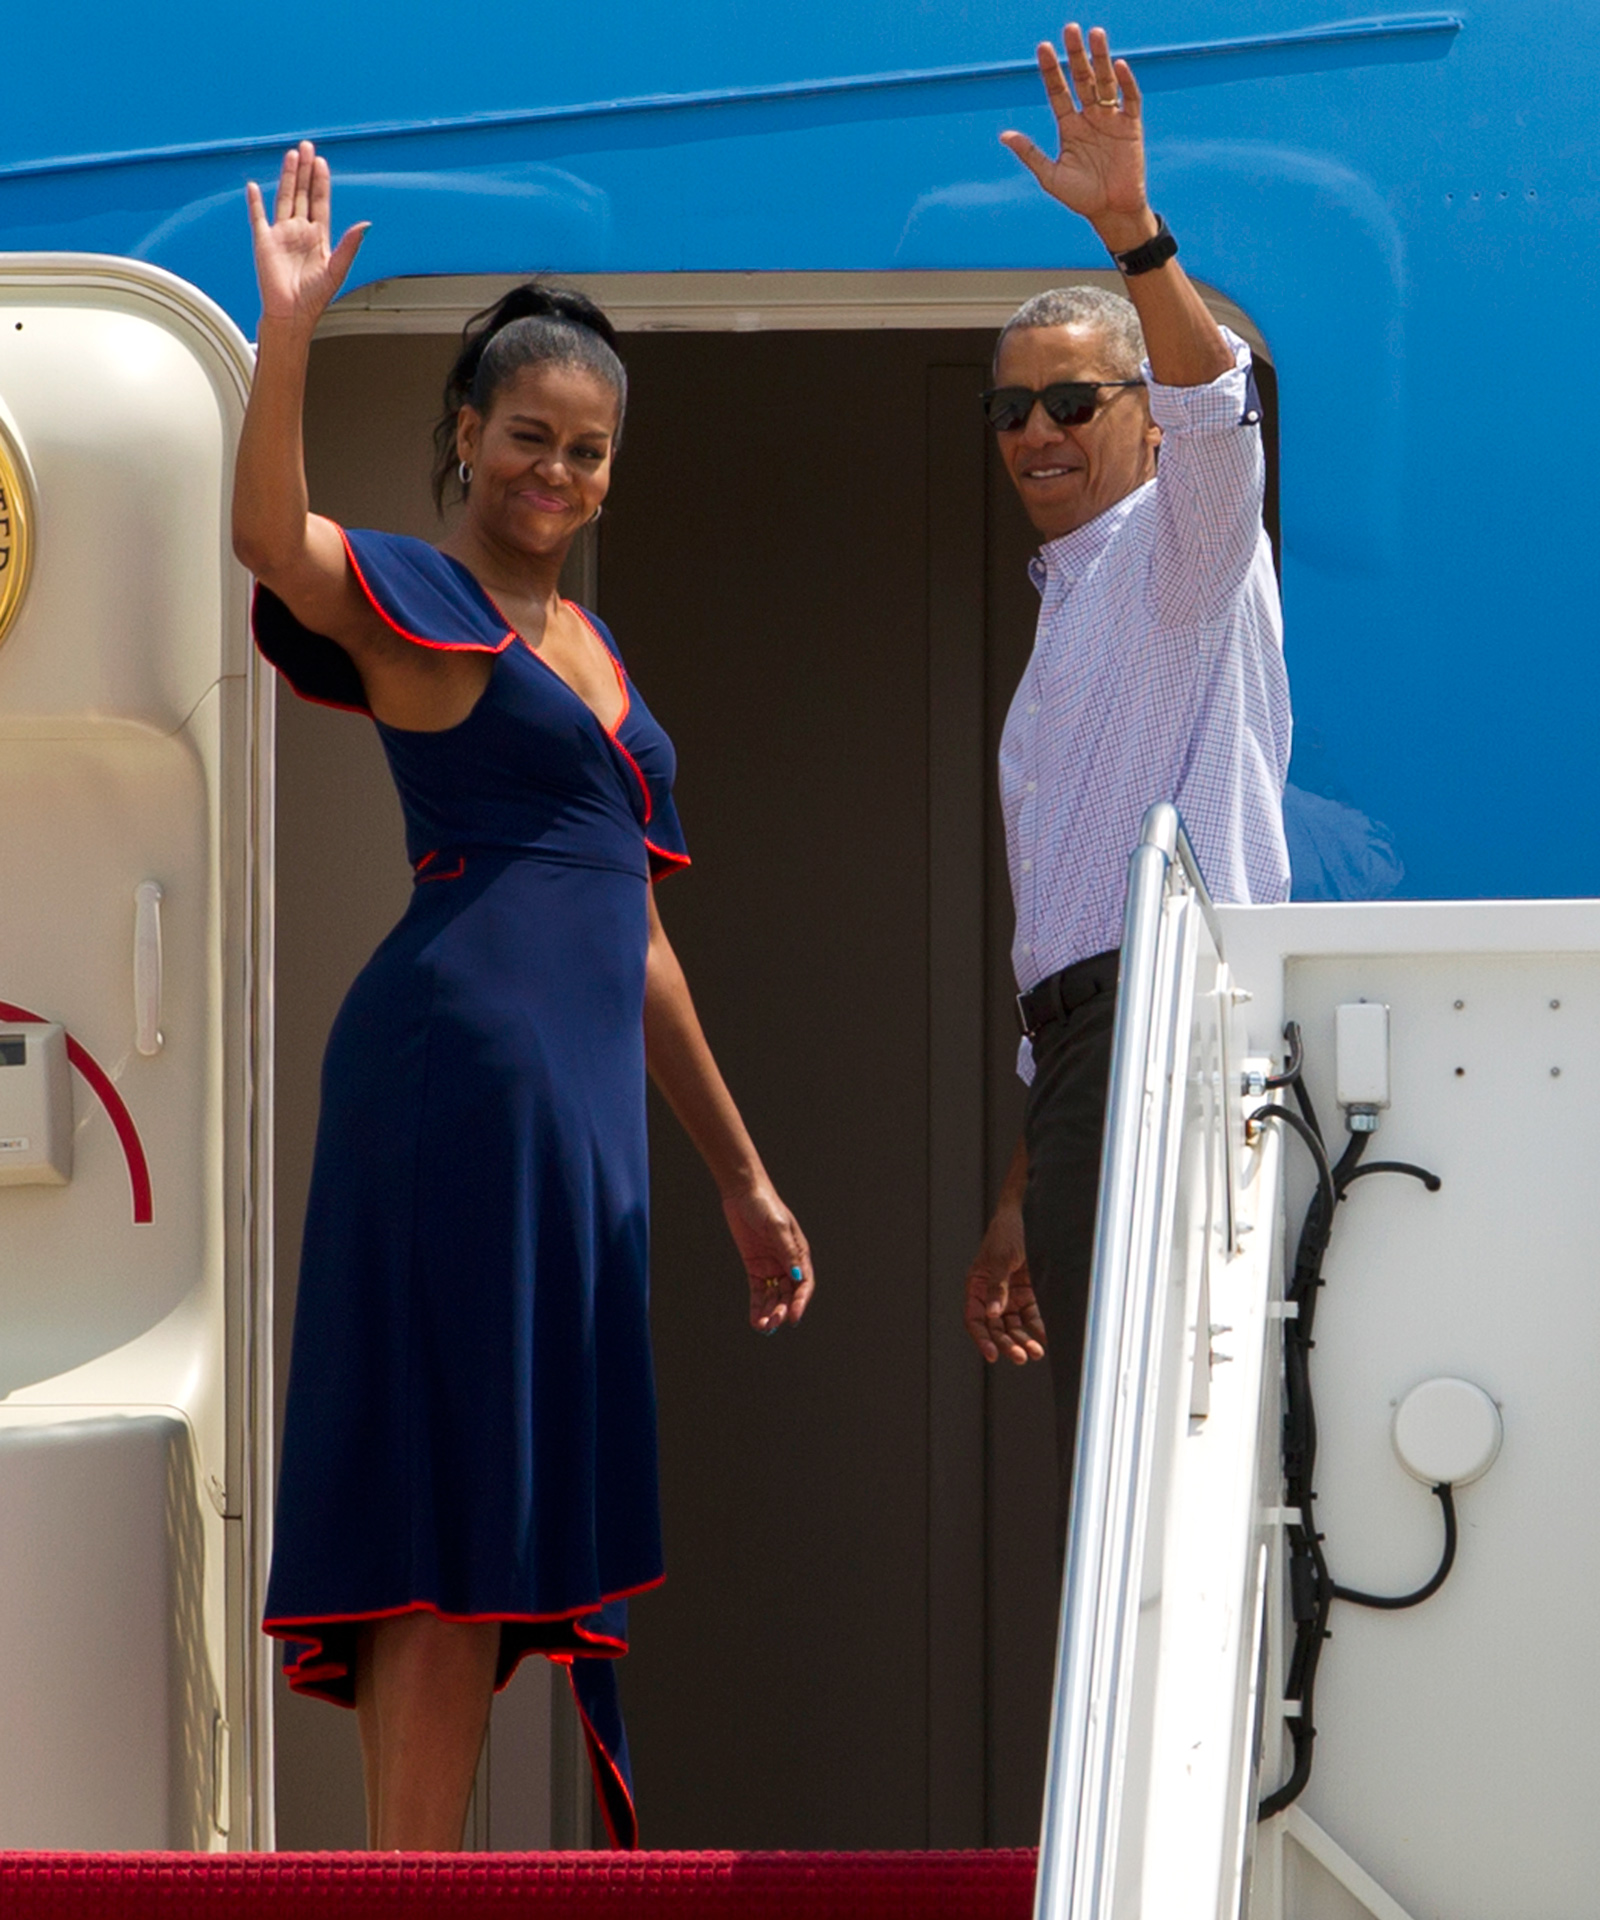 The Obama's Vacation - Lead